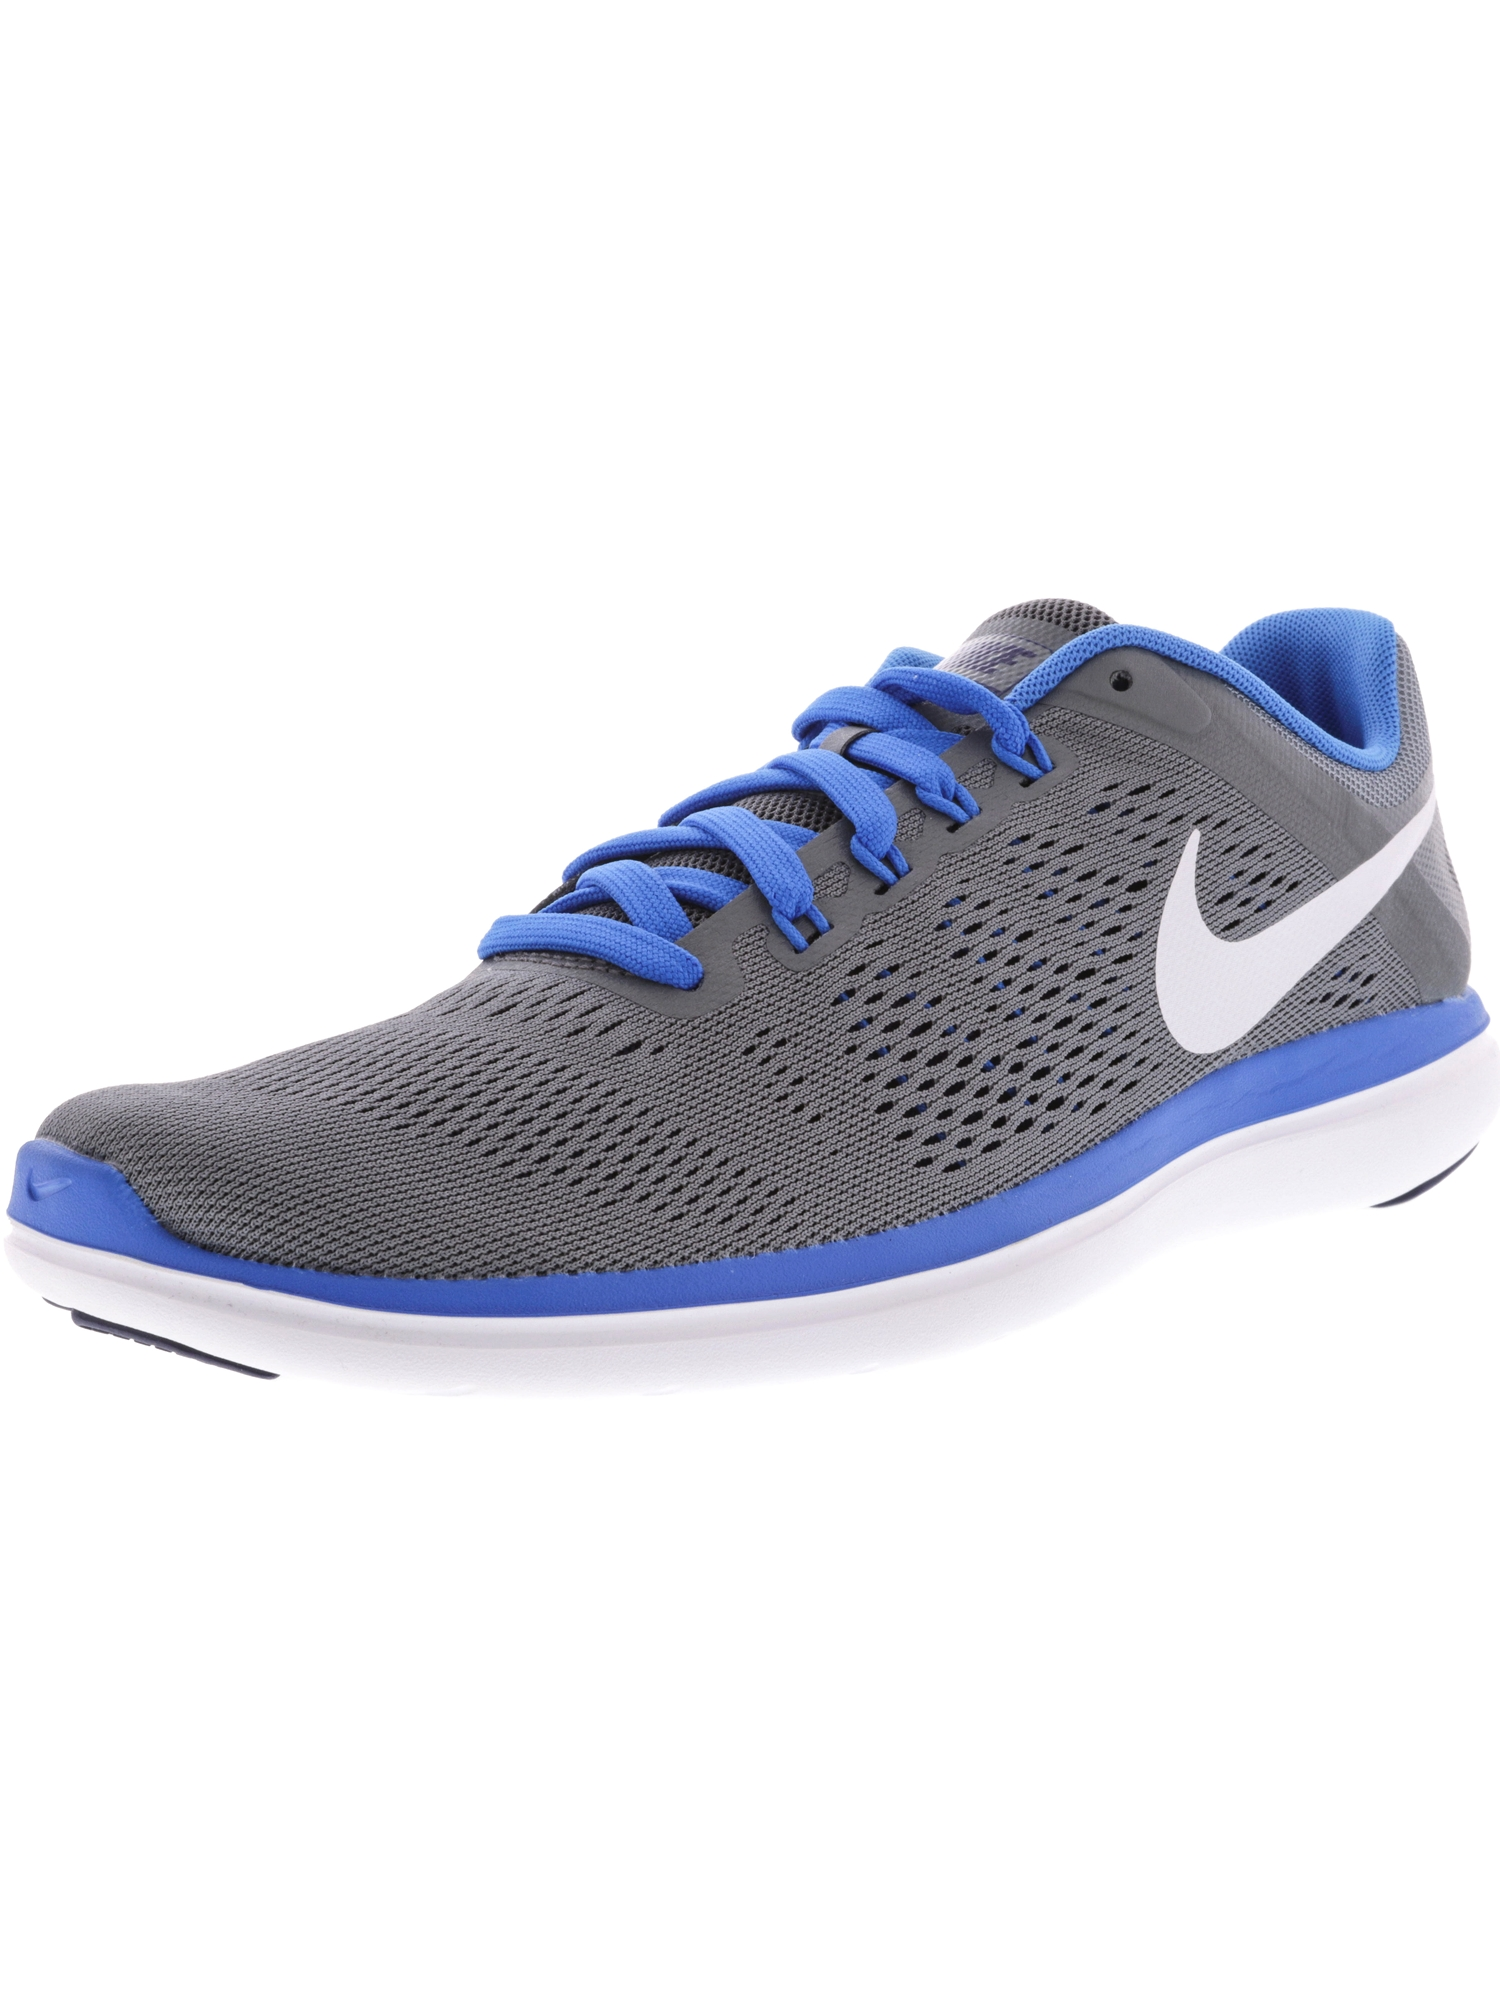 Nike Men's Flex 2016 Rn Black / White-Cool Grey Ankle-High Running Shoe - 11M